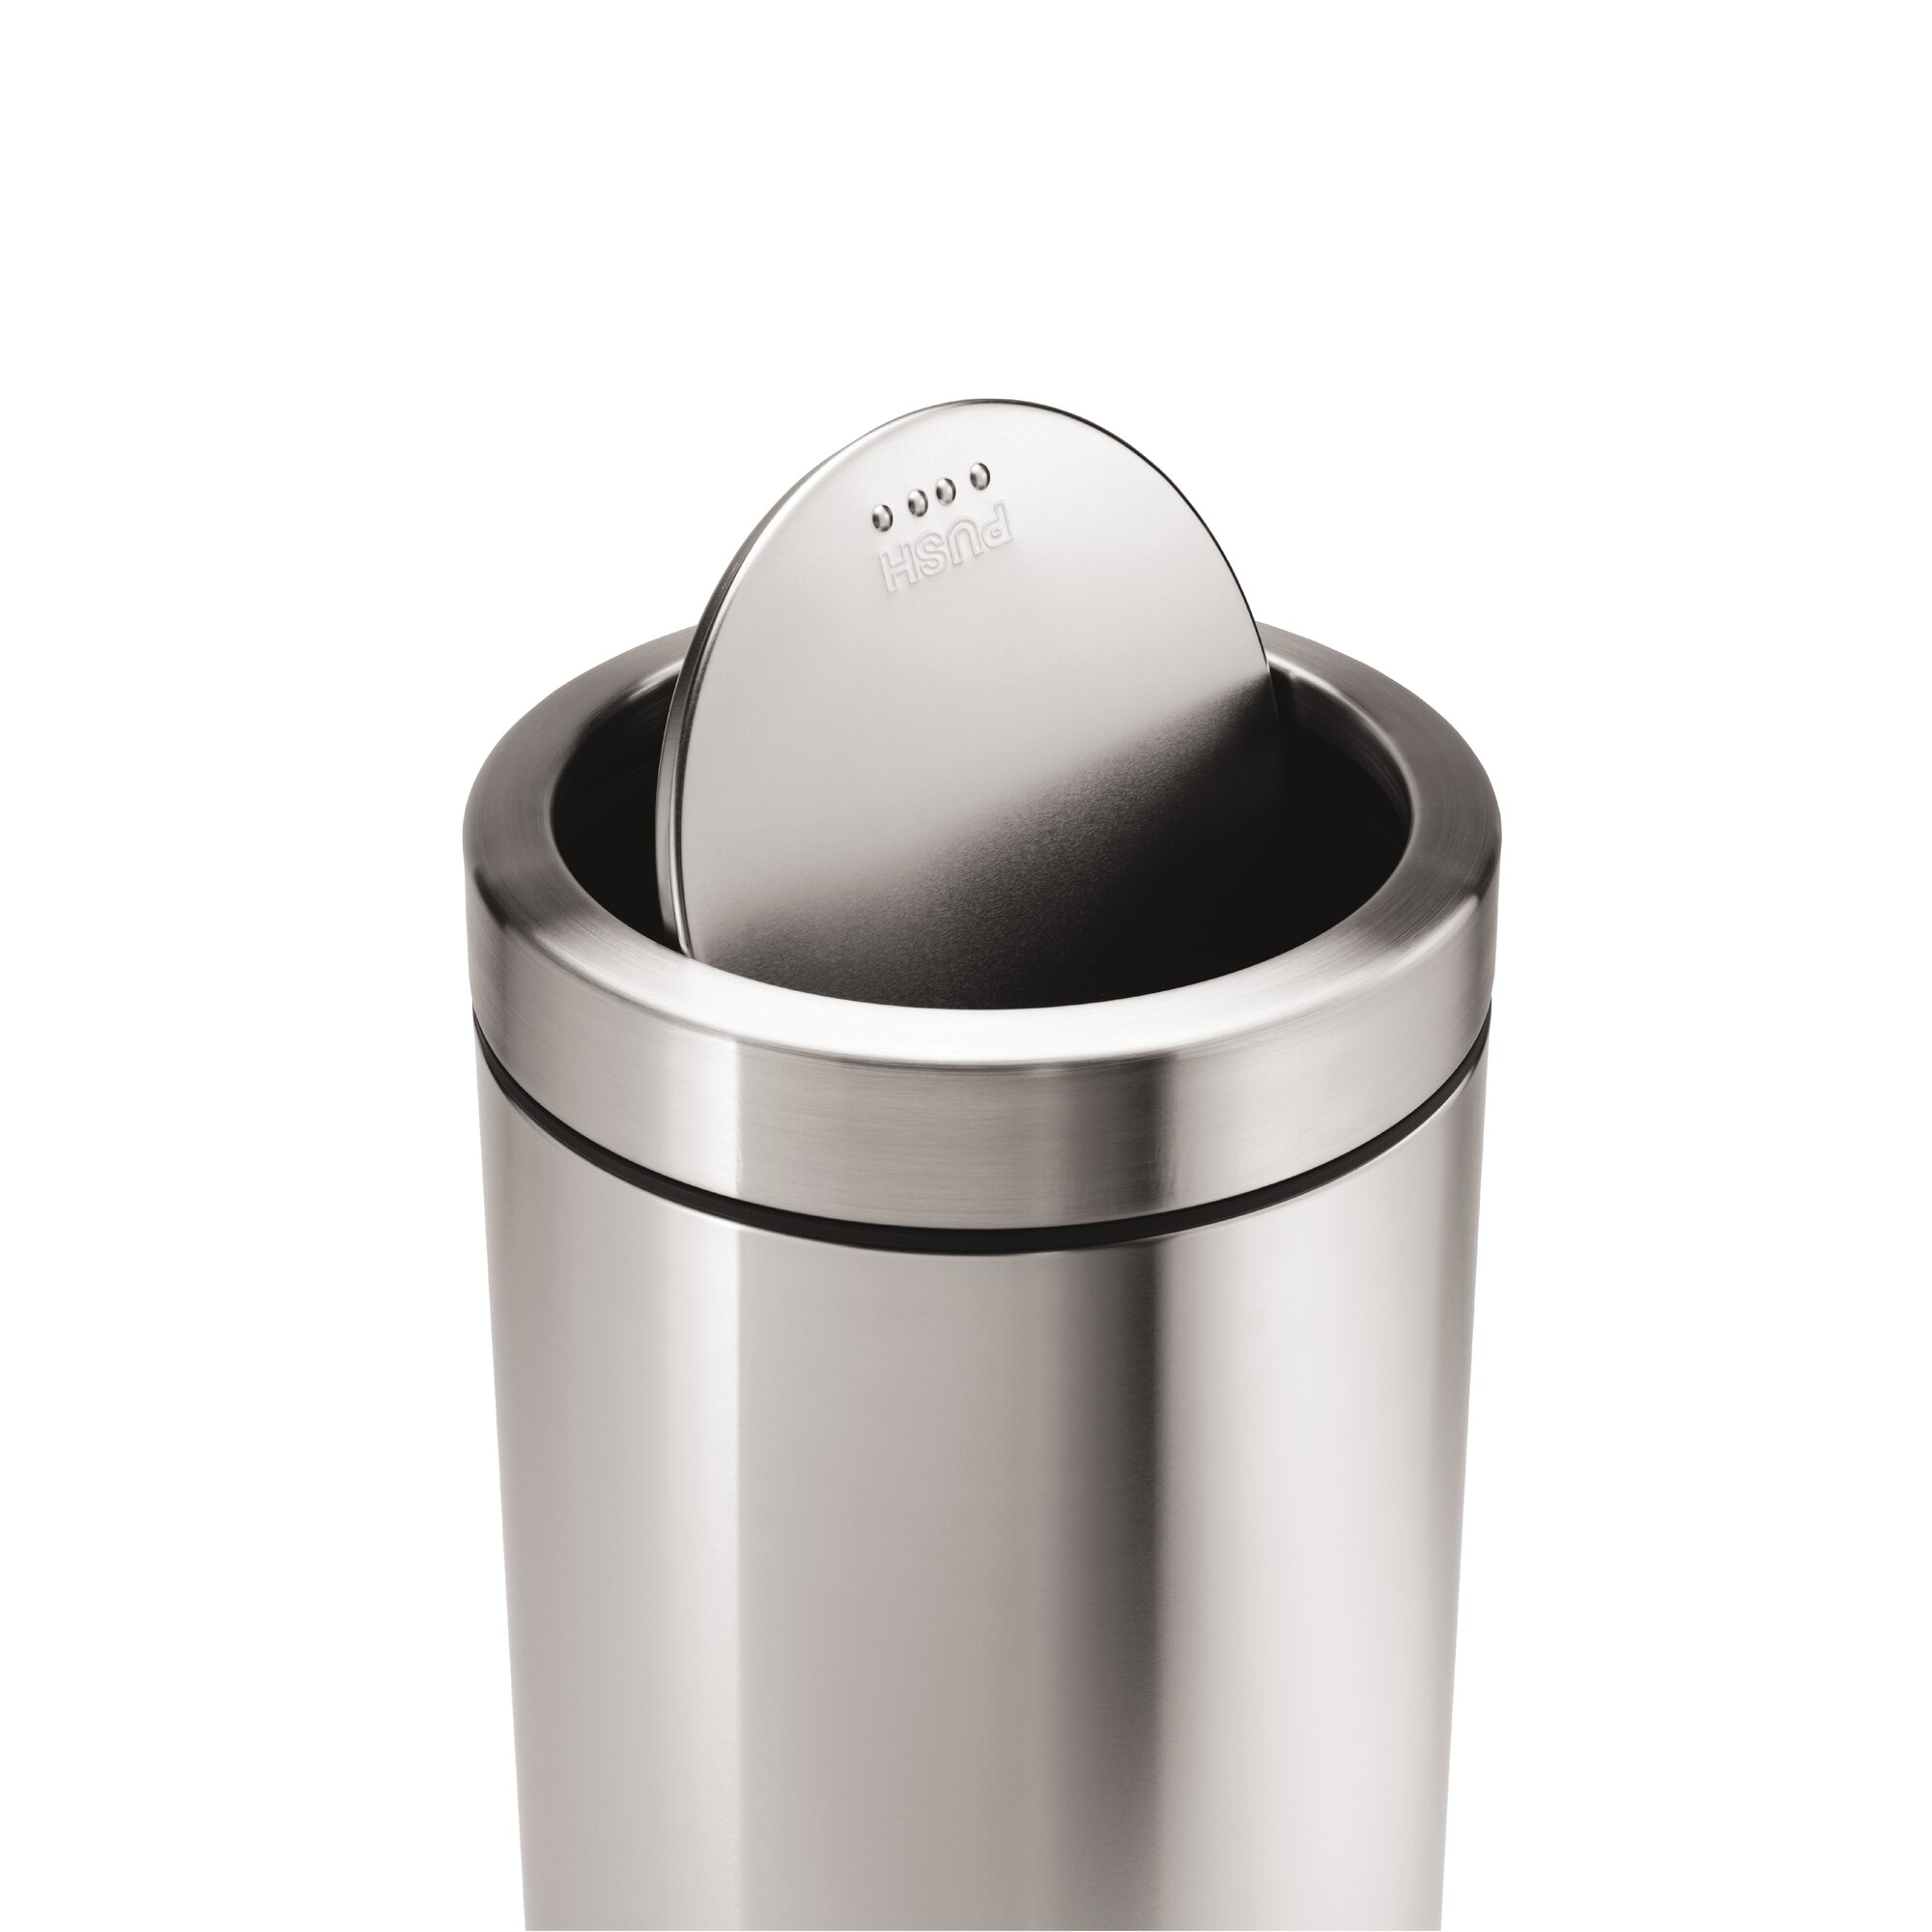 stainless steel 14 5 gallon swing top trash can reviews birch lane. Black Bedroom Furniture Sets. Home Design Ideas